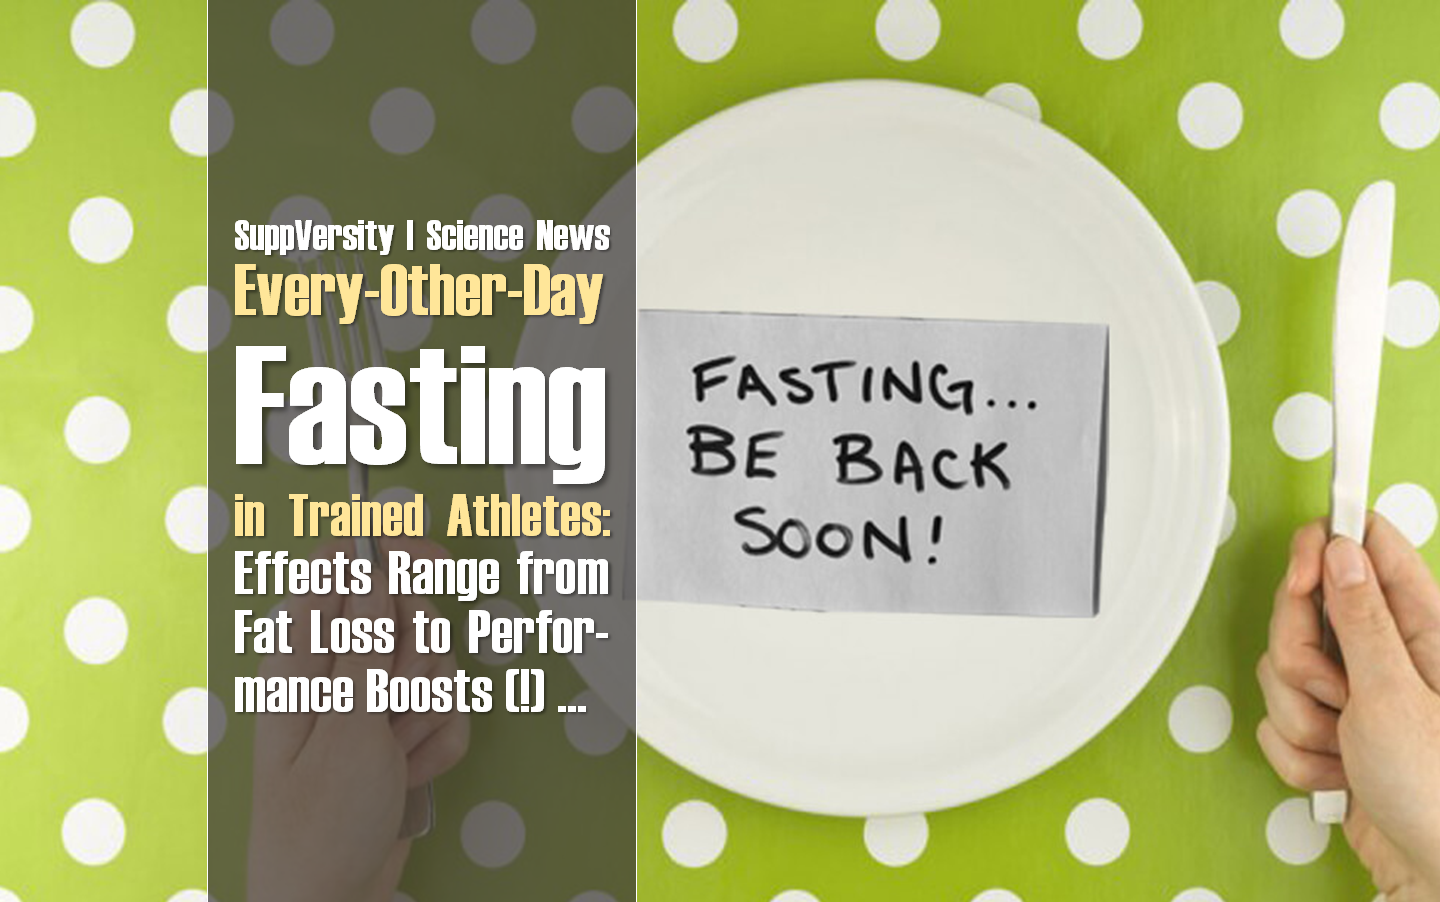 every other day fasting in trained athletes effects range from fat loss to significant performance enhancement